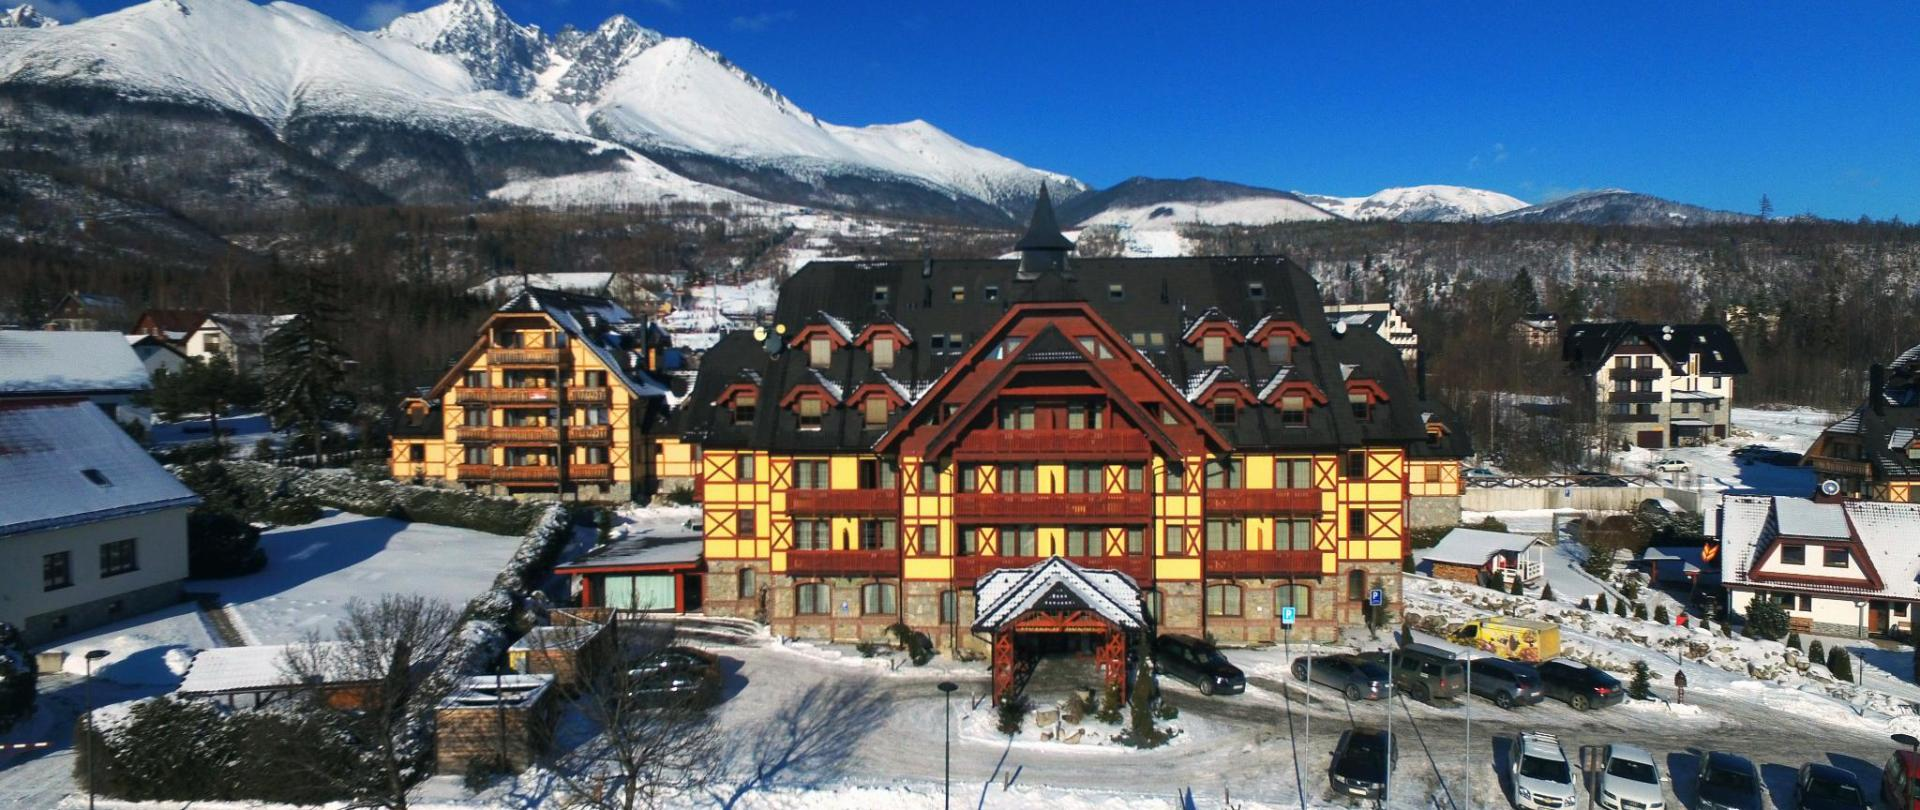 Family apartments in a mountain hotel